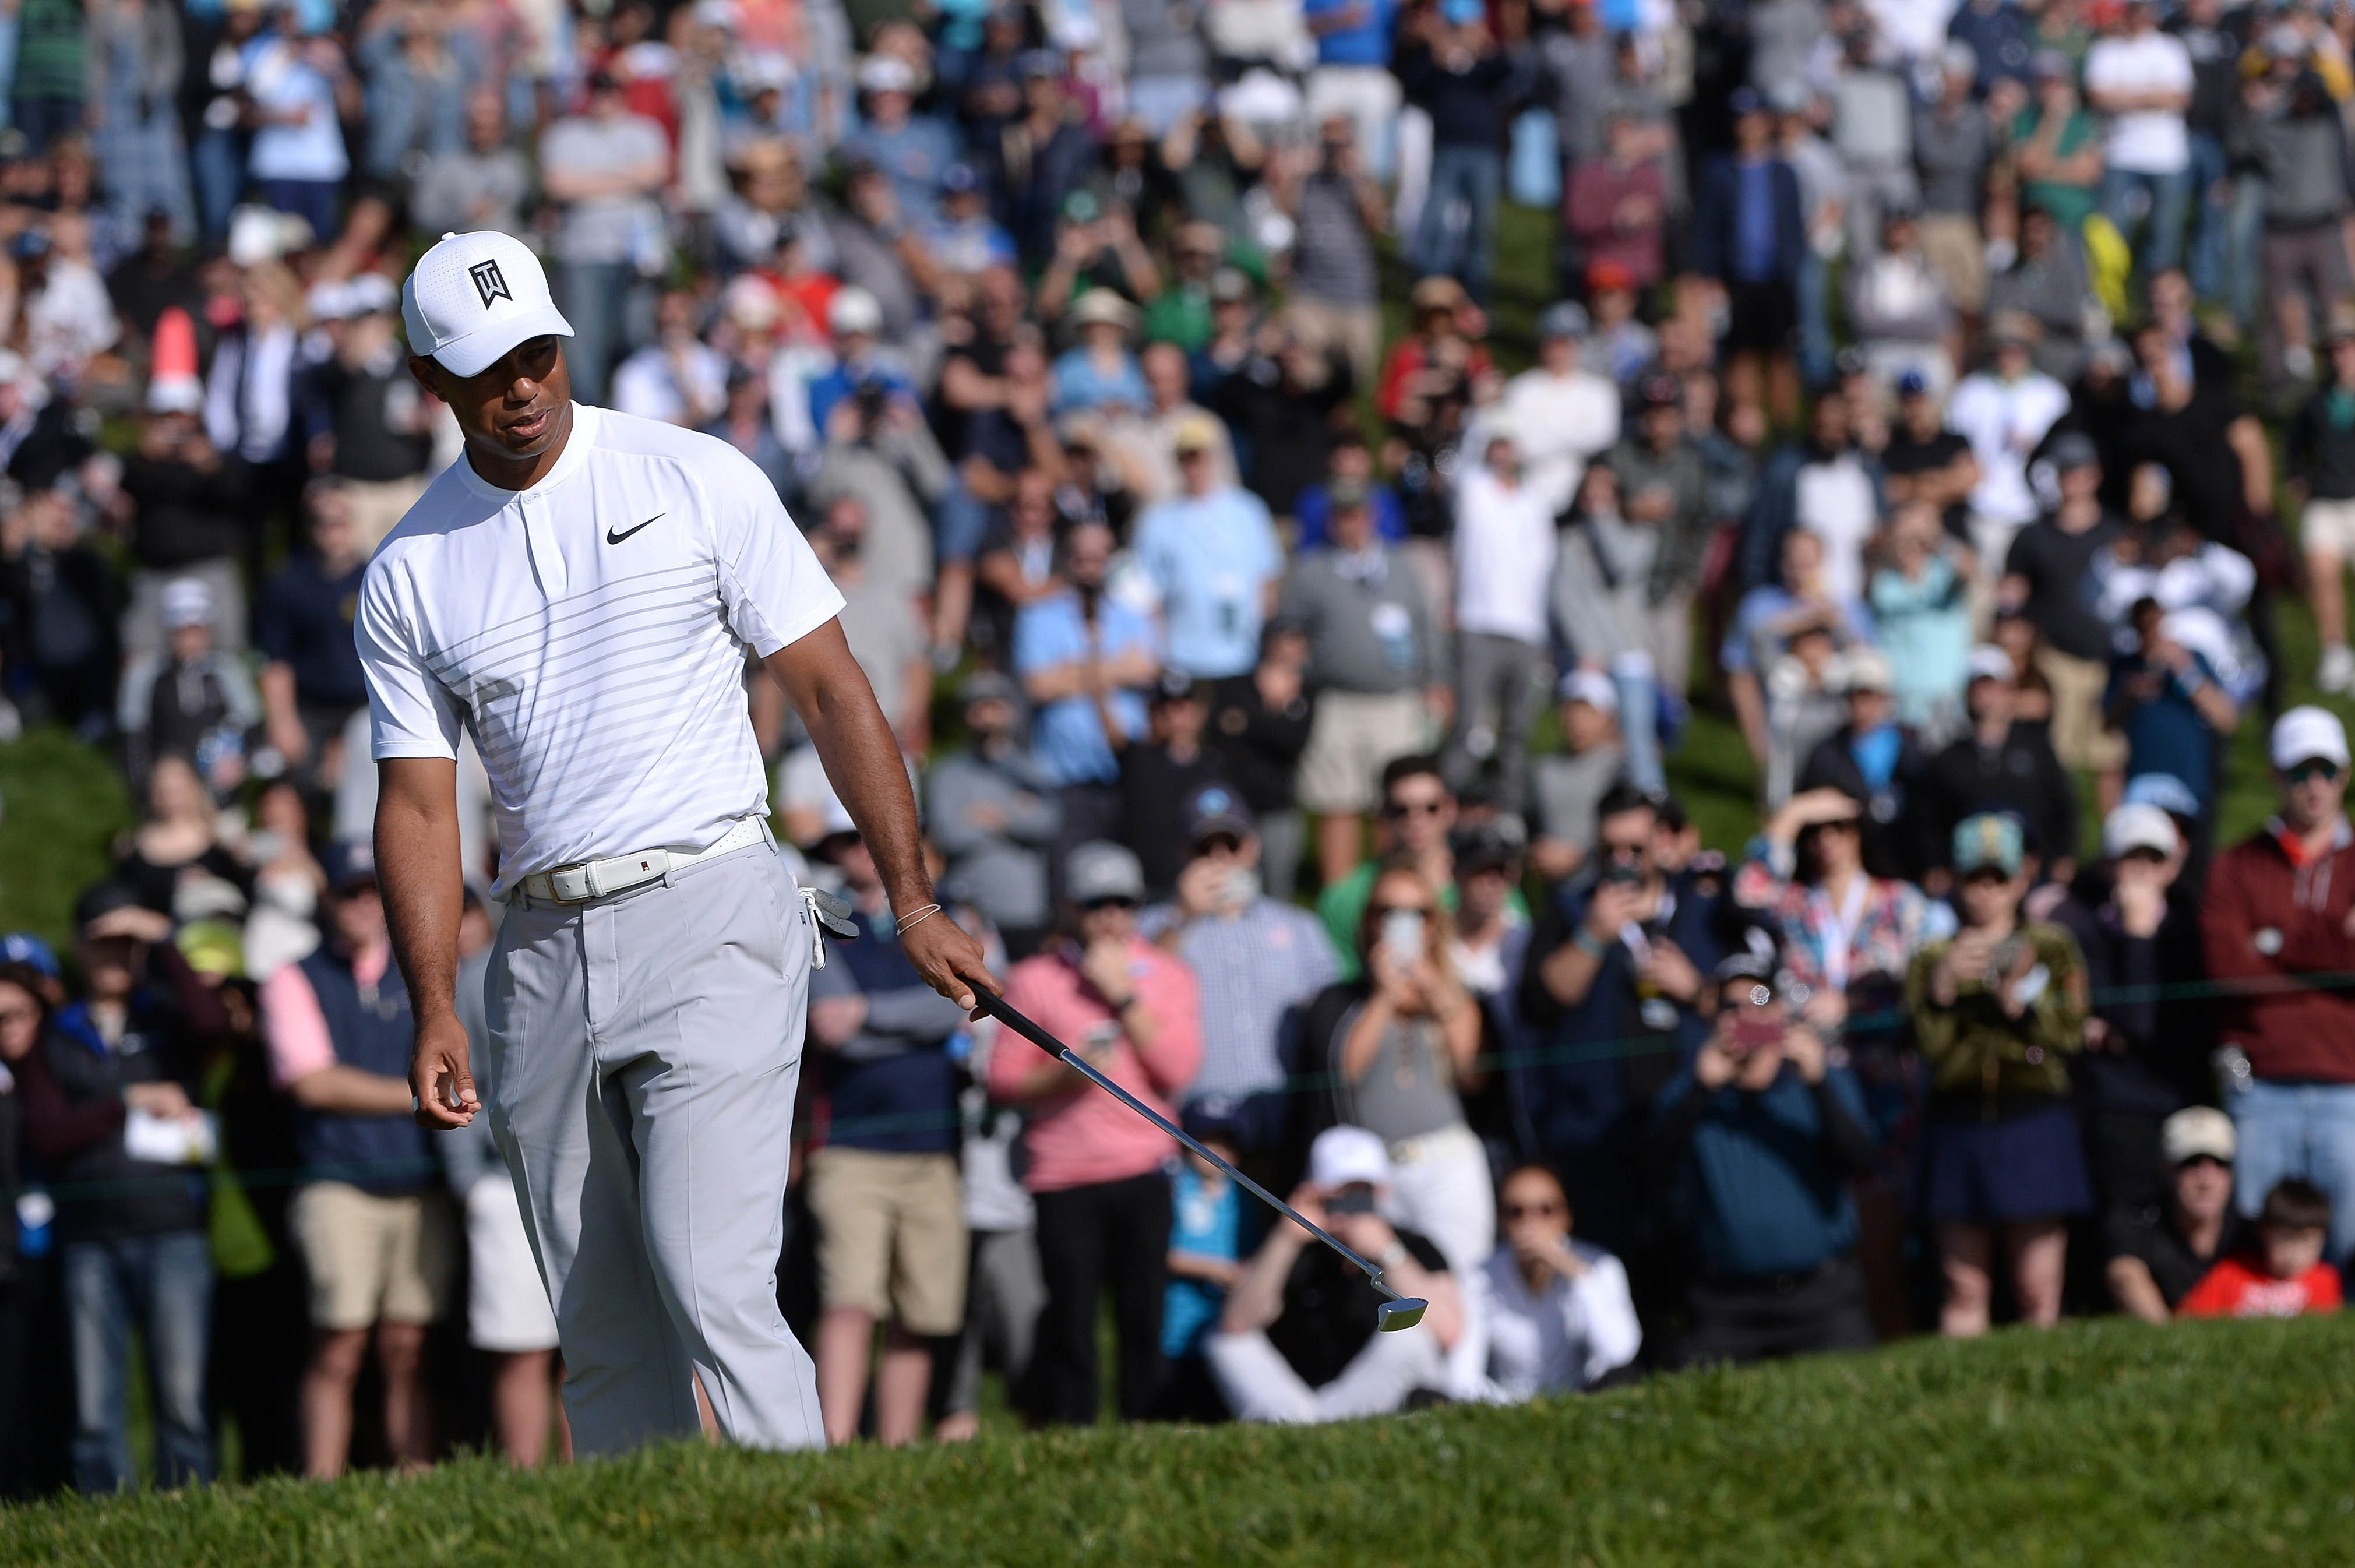 Tiger Woods reveals offseason knee surgery, hopes to start practicing again in a 'few weeks'